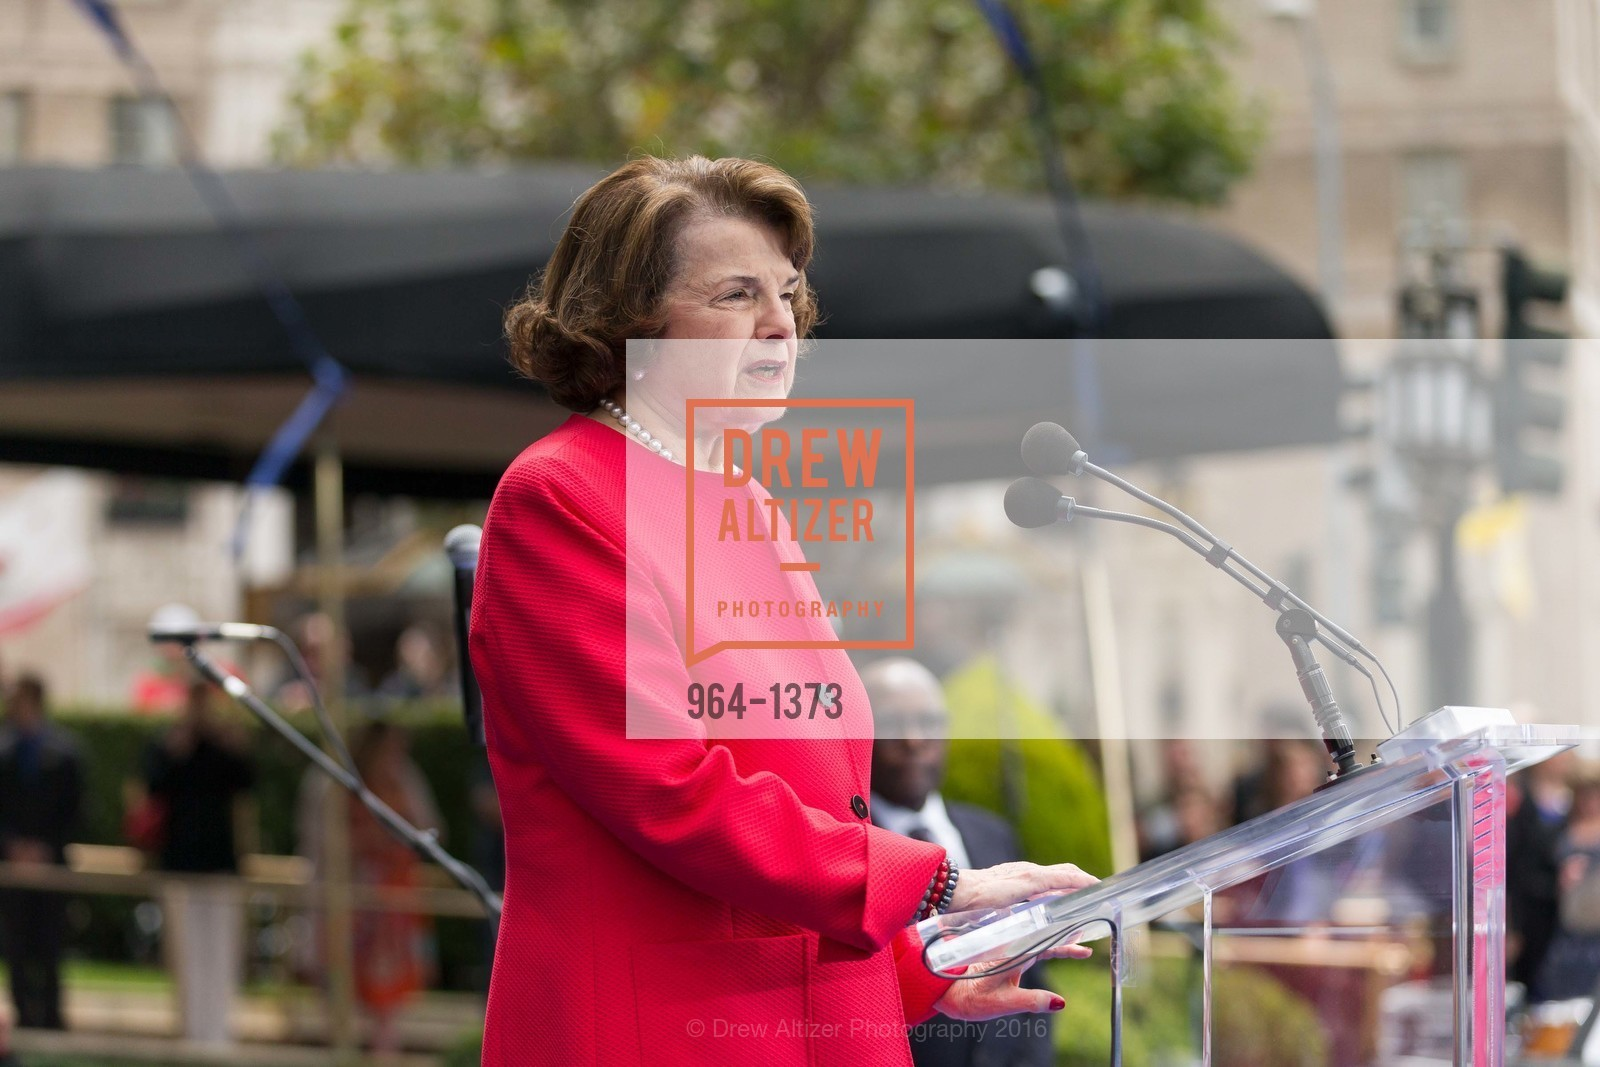 Dianne Feinstein, Photo #964-1373